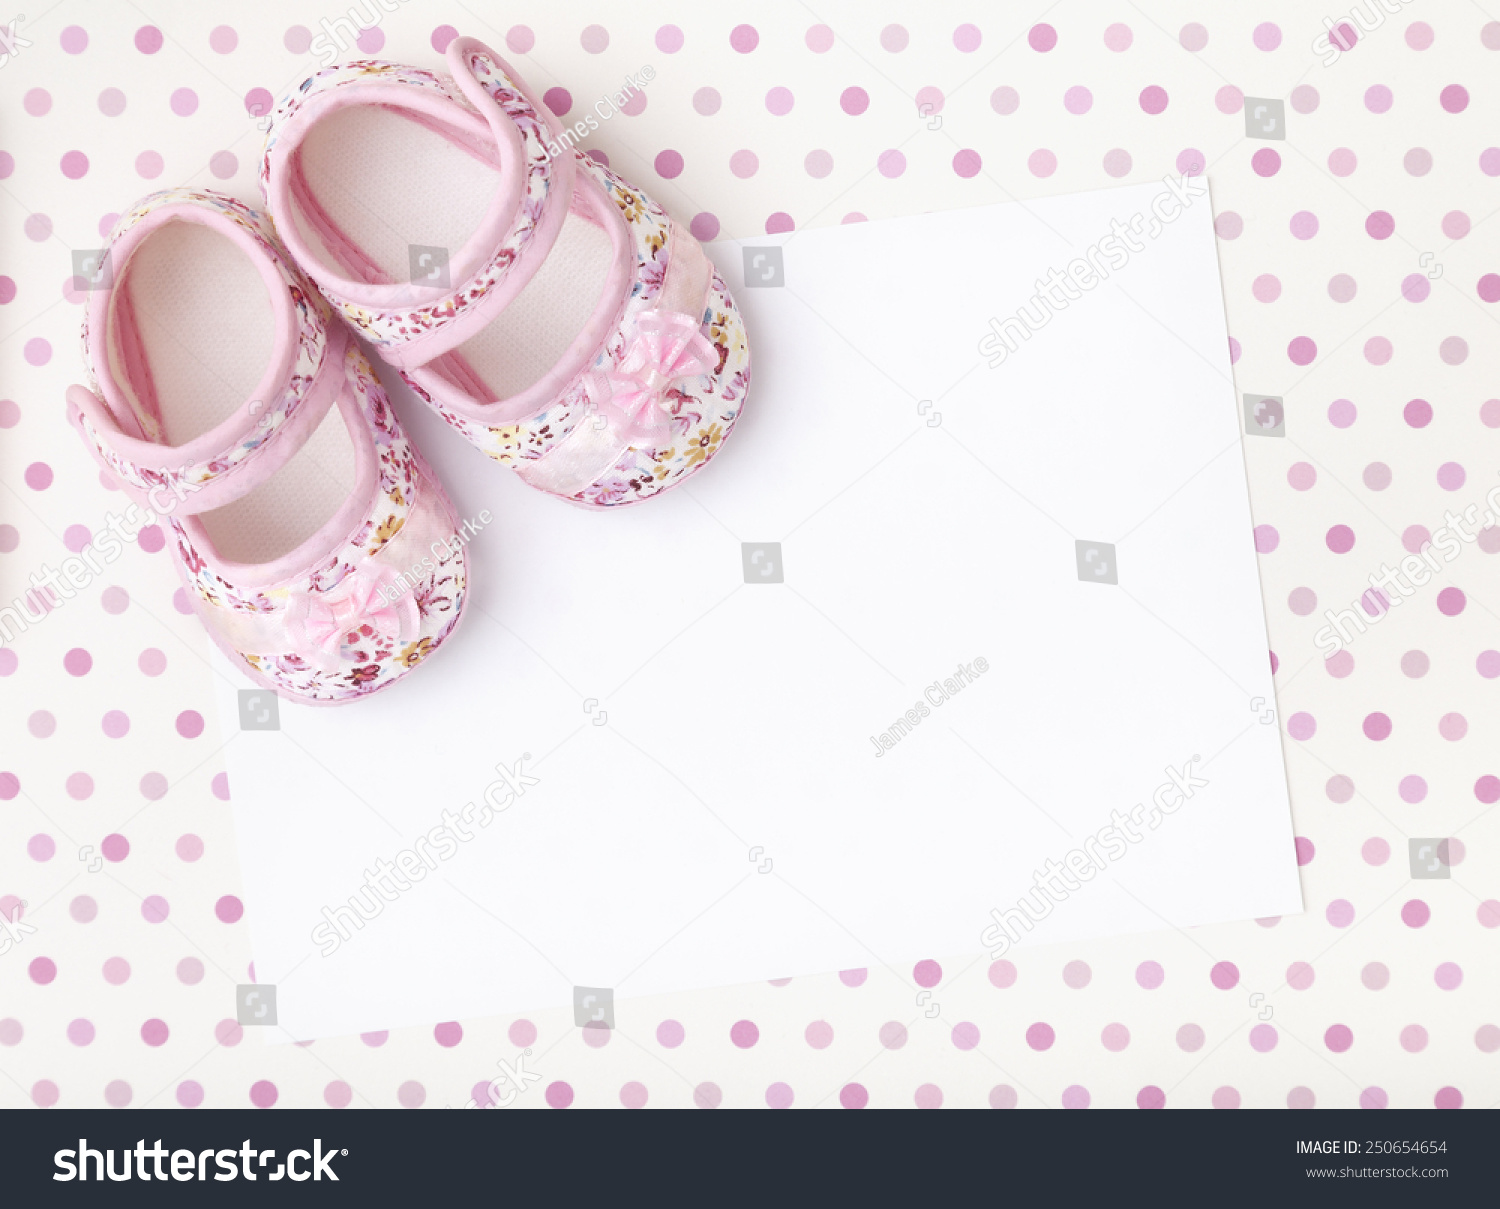 Greetings Baby Shower Card